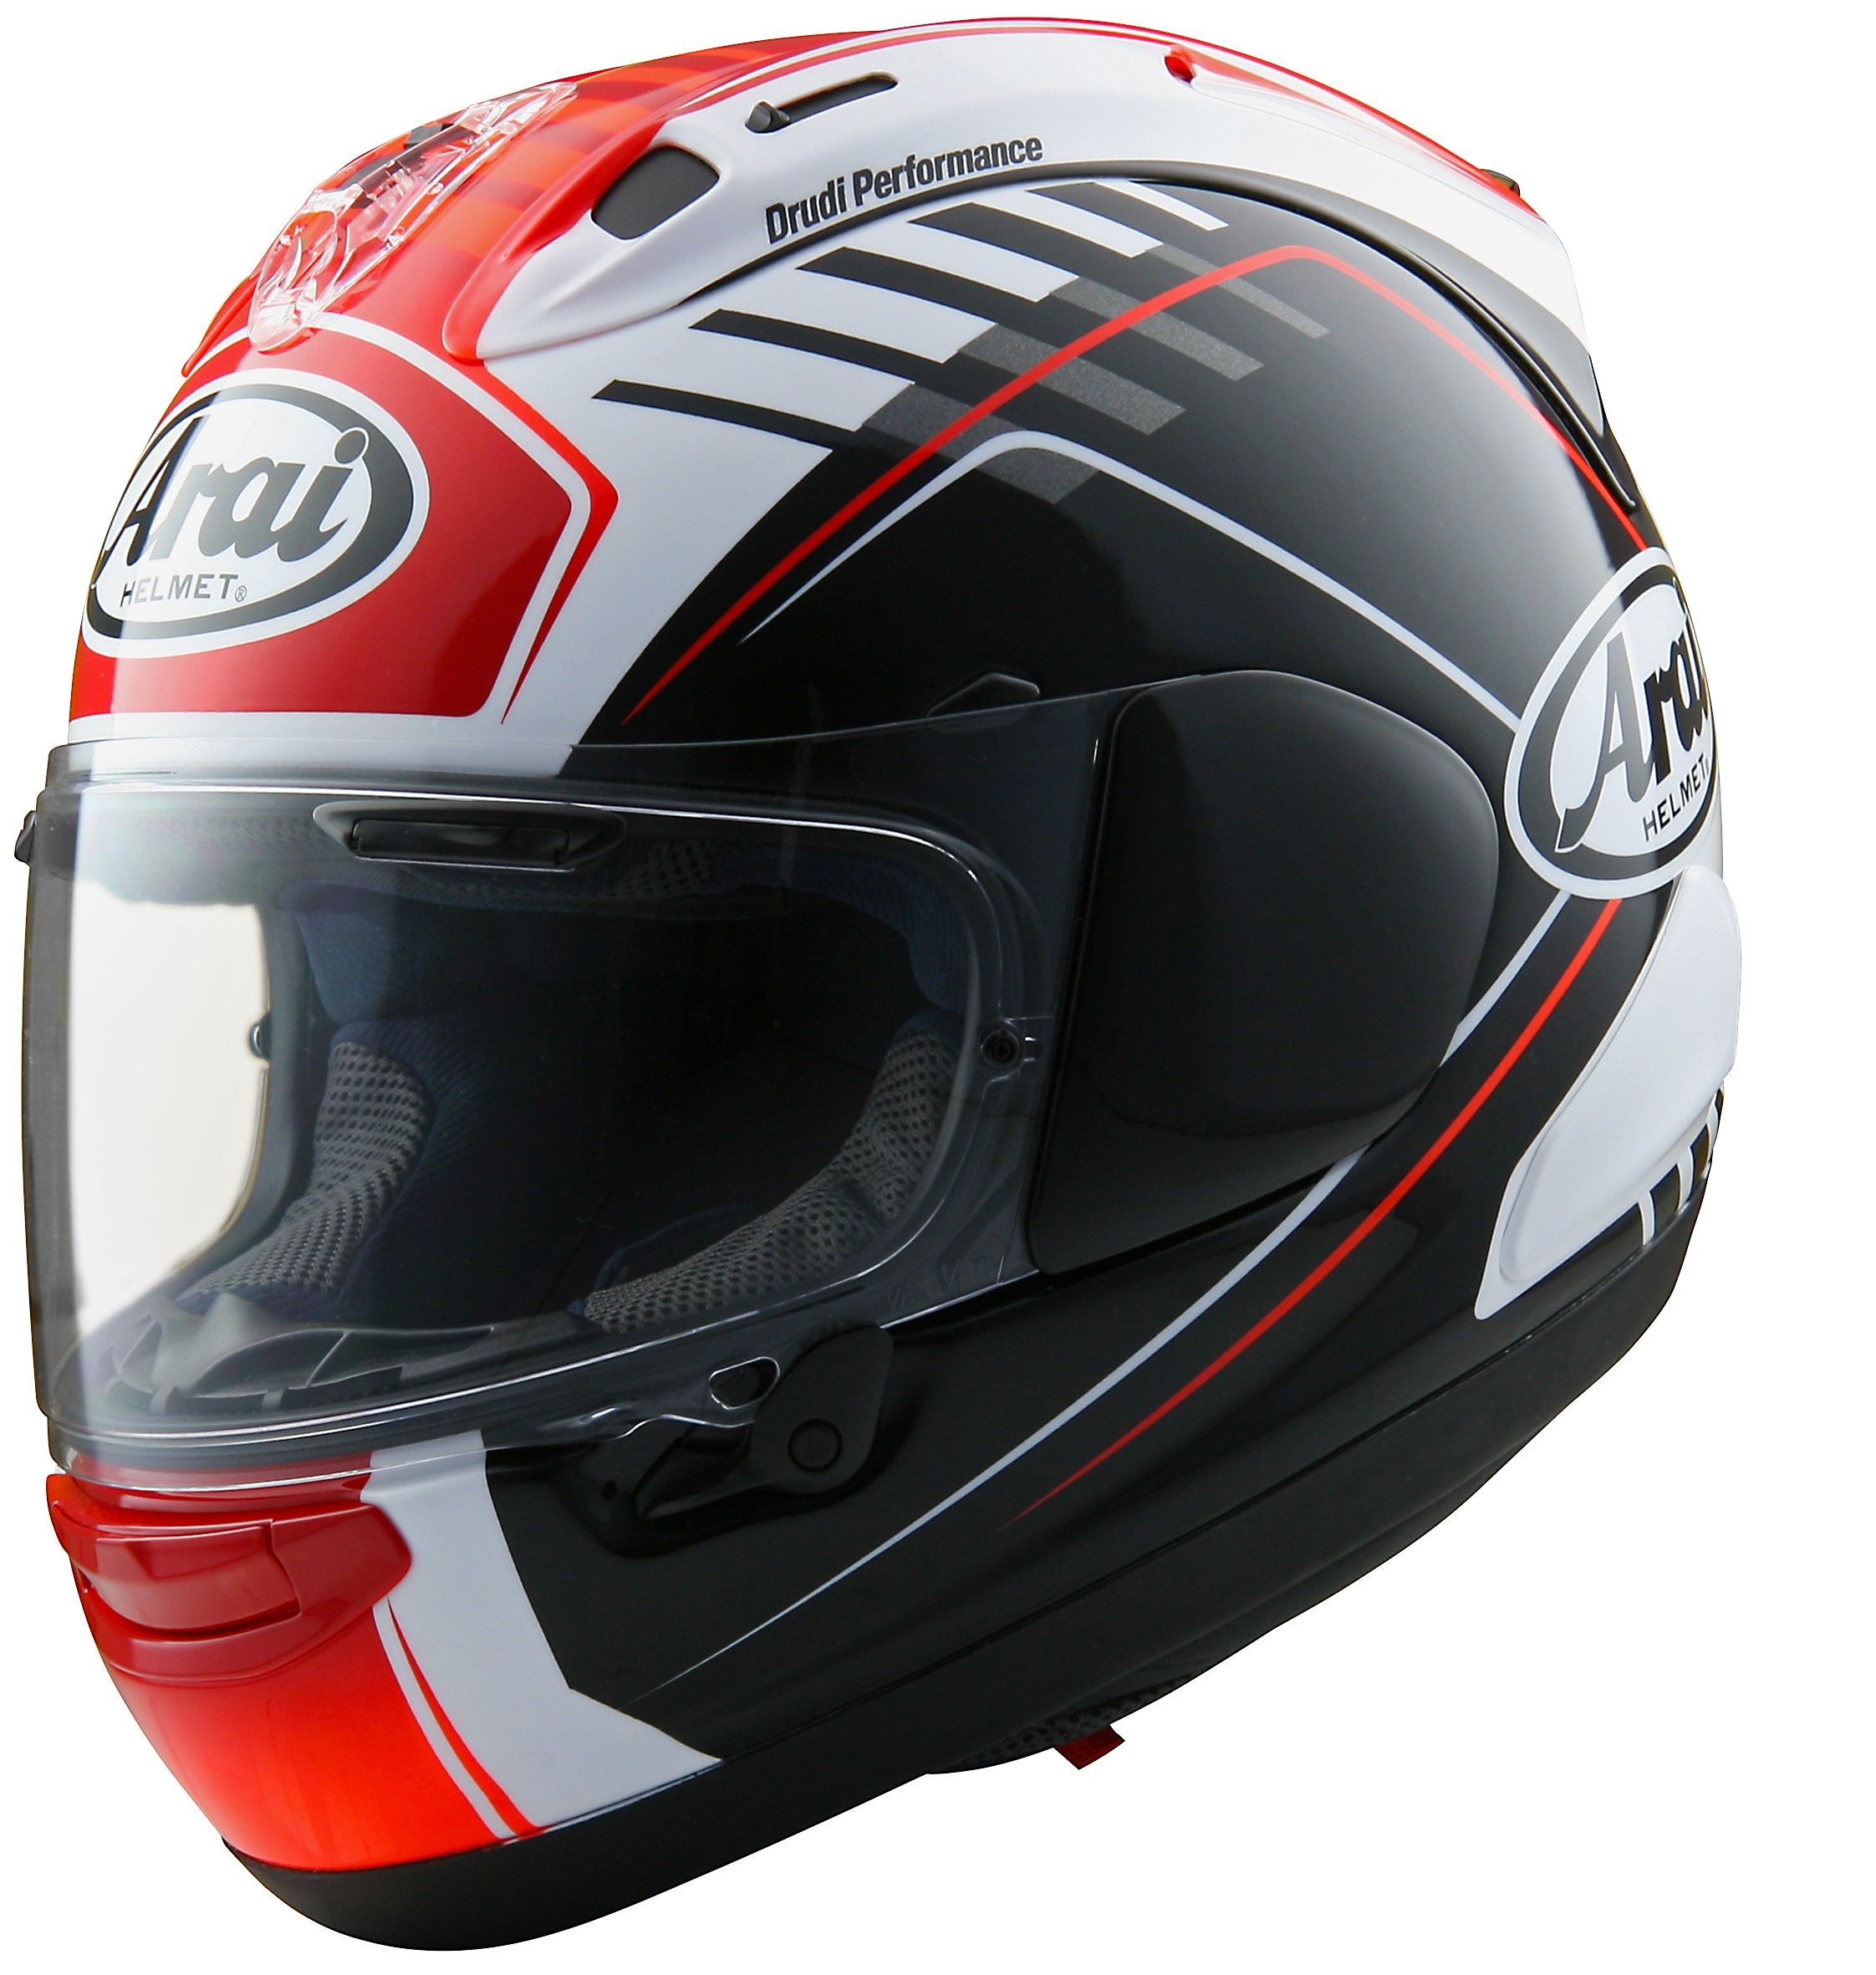 arai rx 7v rea replica helmet arai full face helmets uk. Black Bedroom Furniture Sets. Home Design Ideas